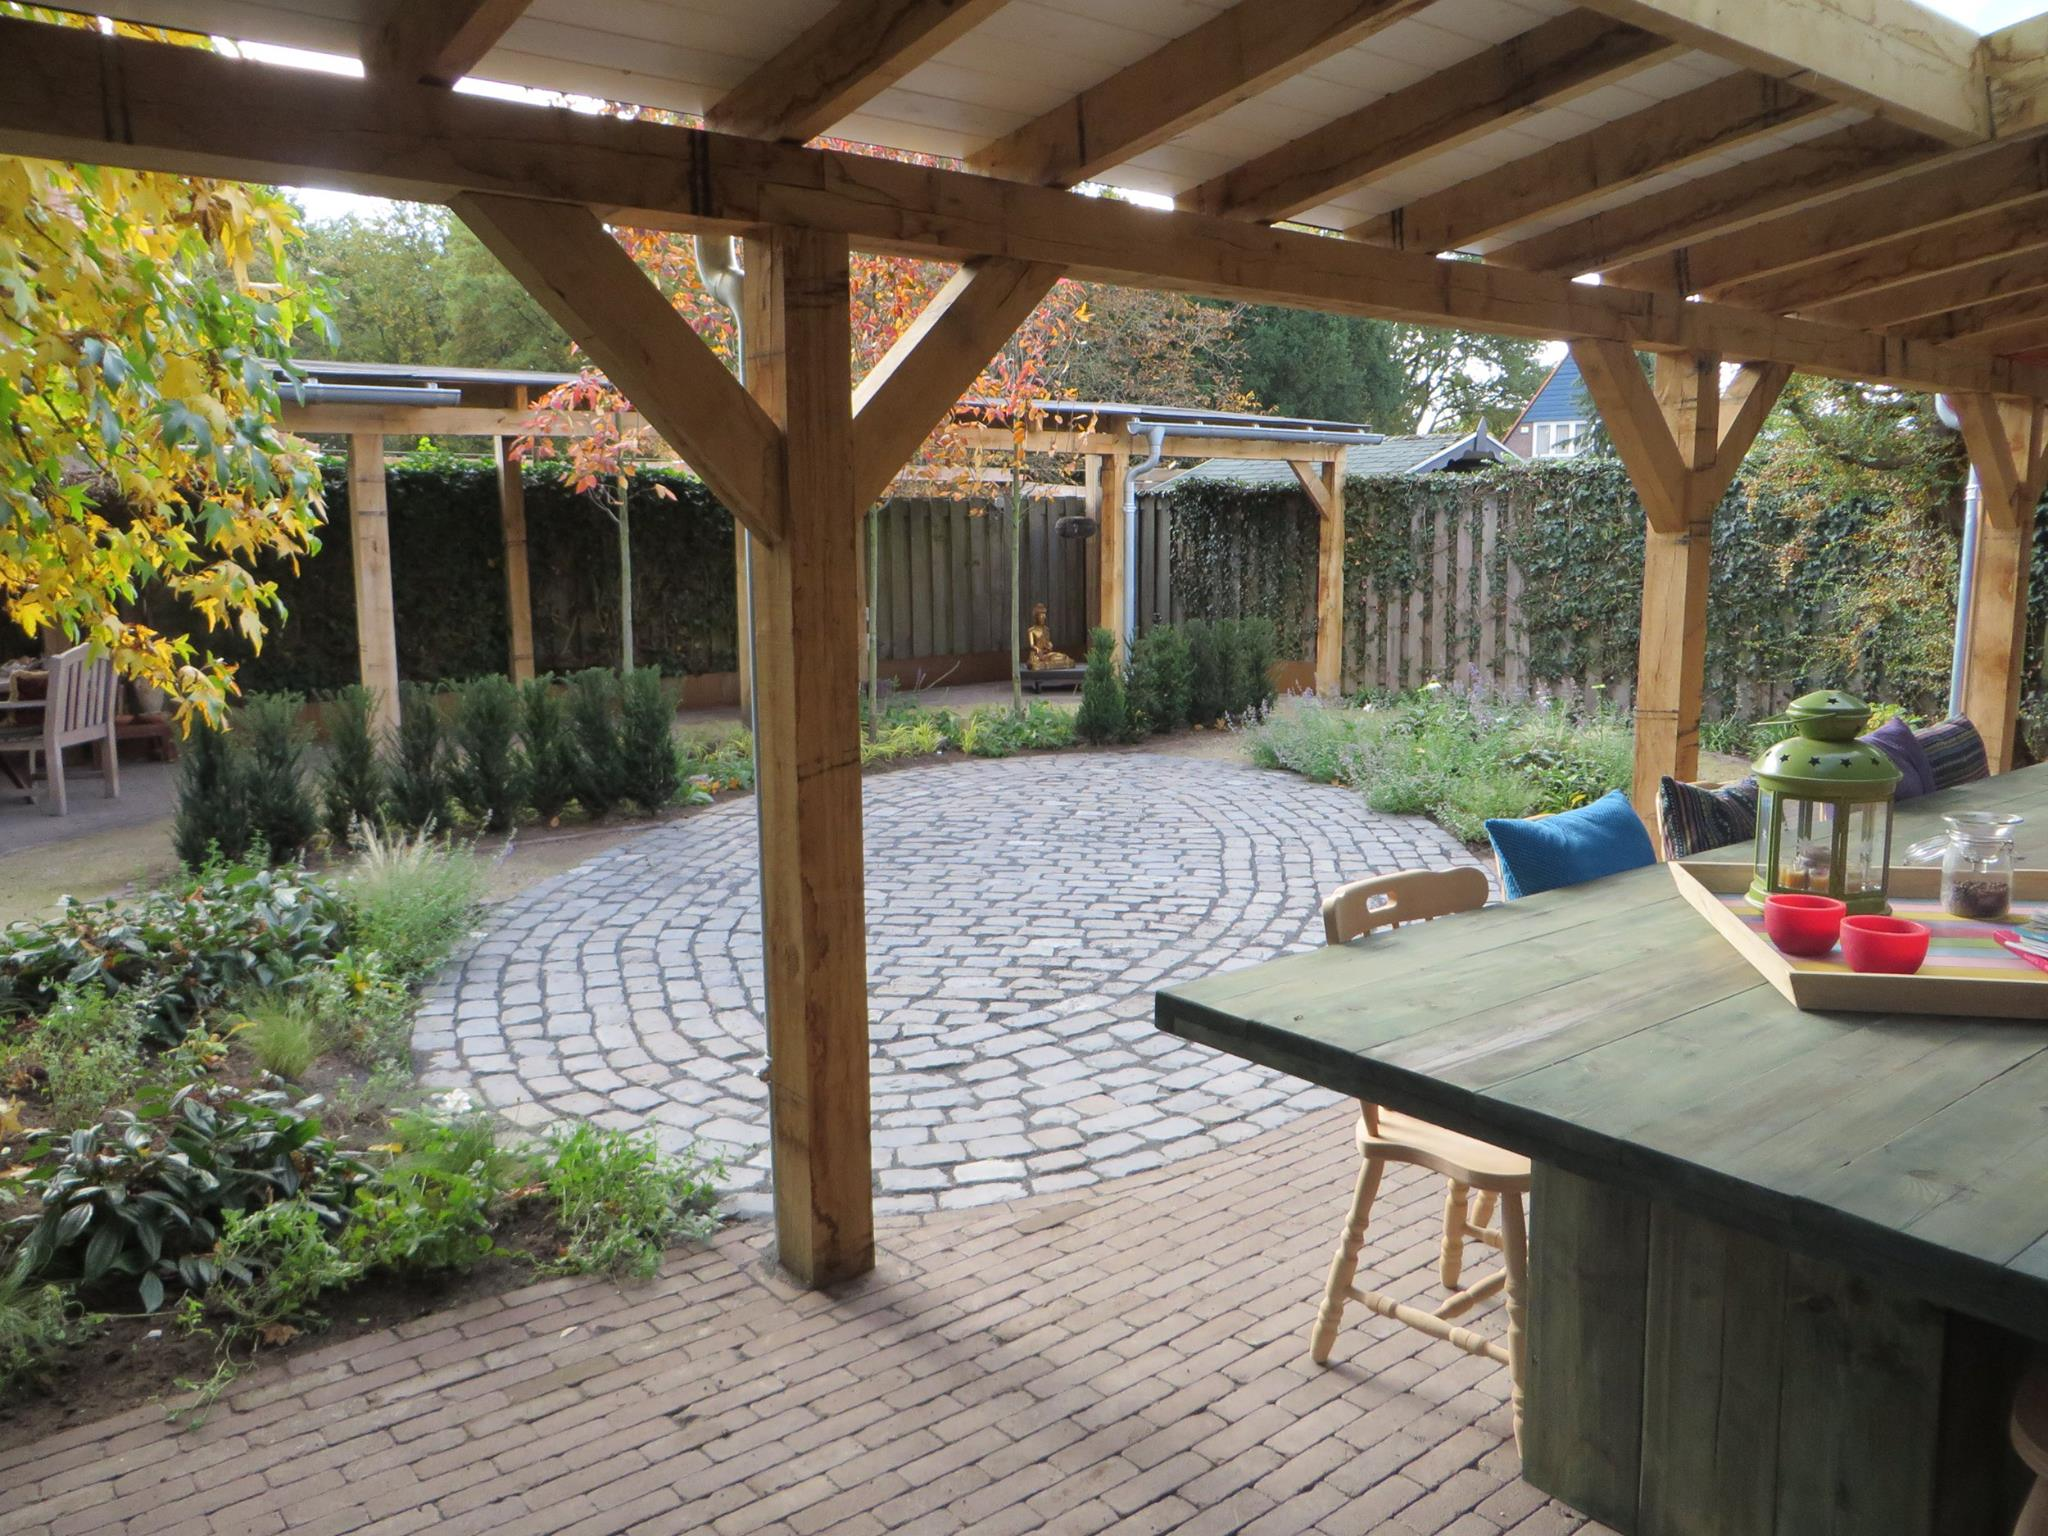 Inrichting Overkapping Tuin : Overkapping tuin landelijk: landelijke tuin een landelijke tuin